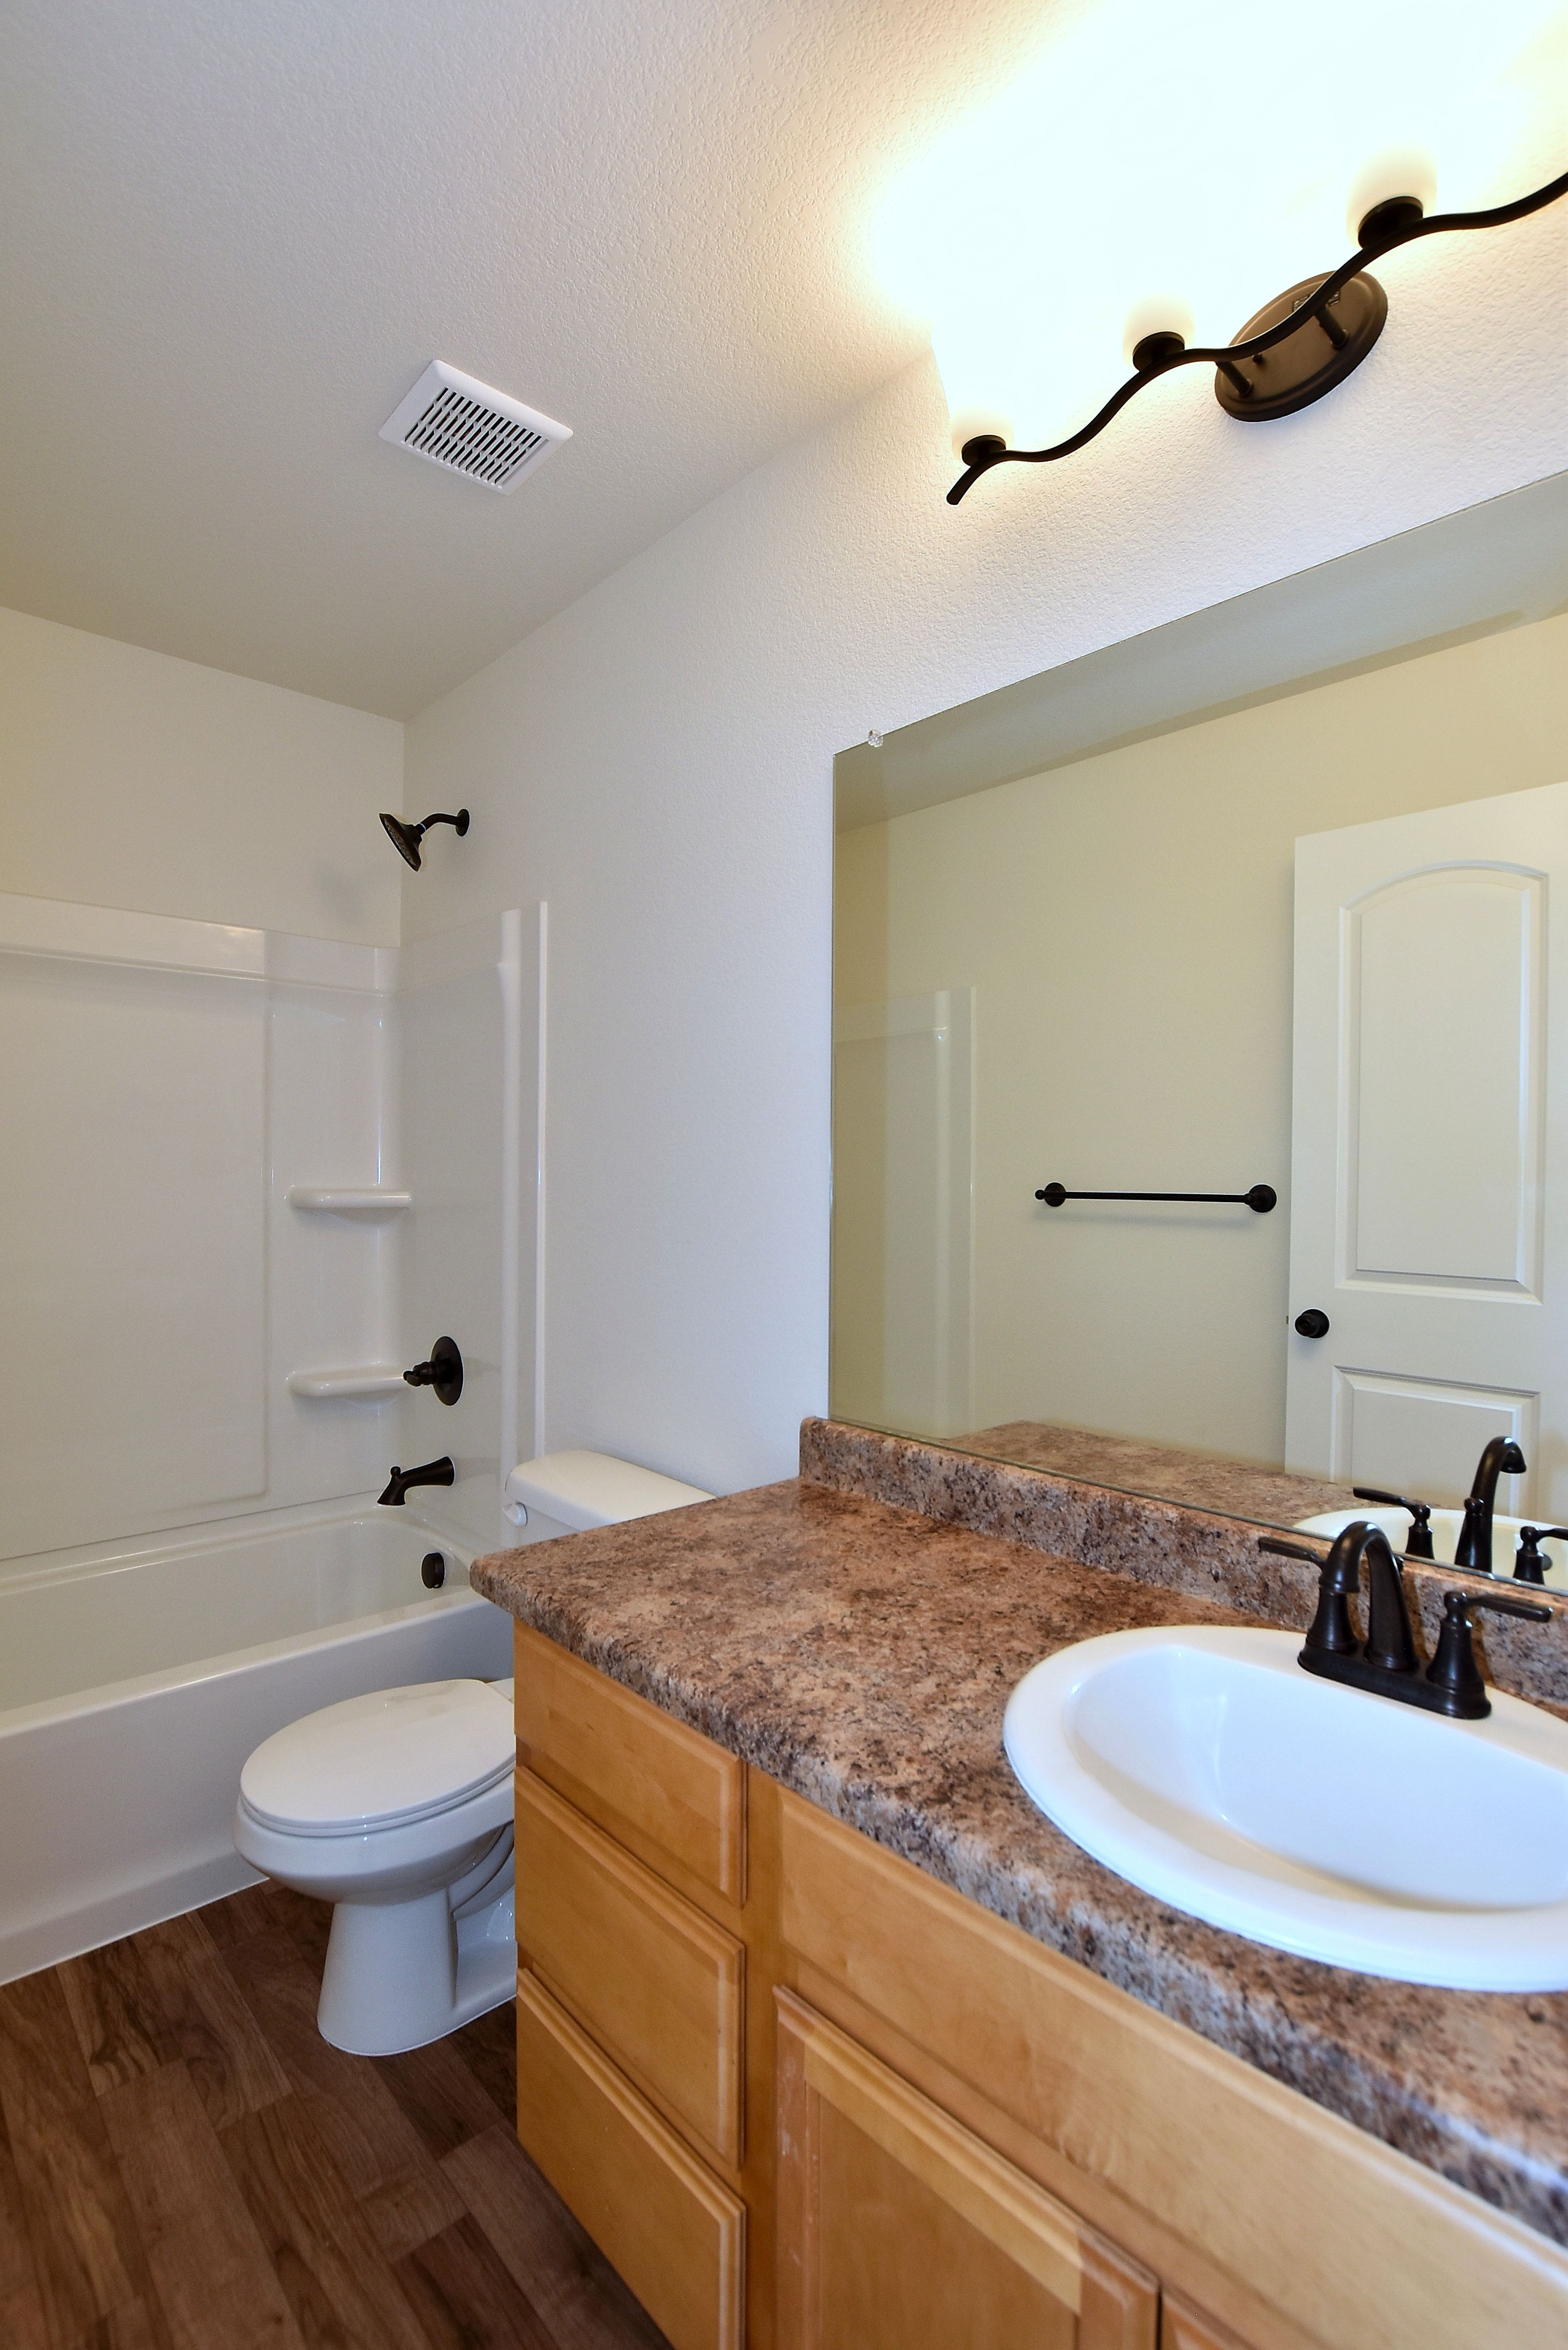 Bathroom featured in the California By Journey Homes in Greeley, CO